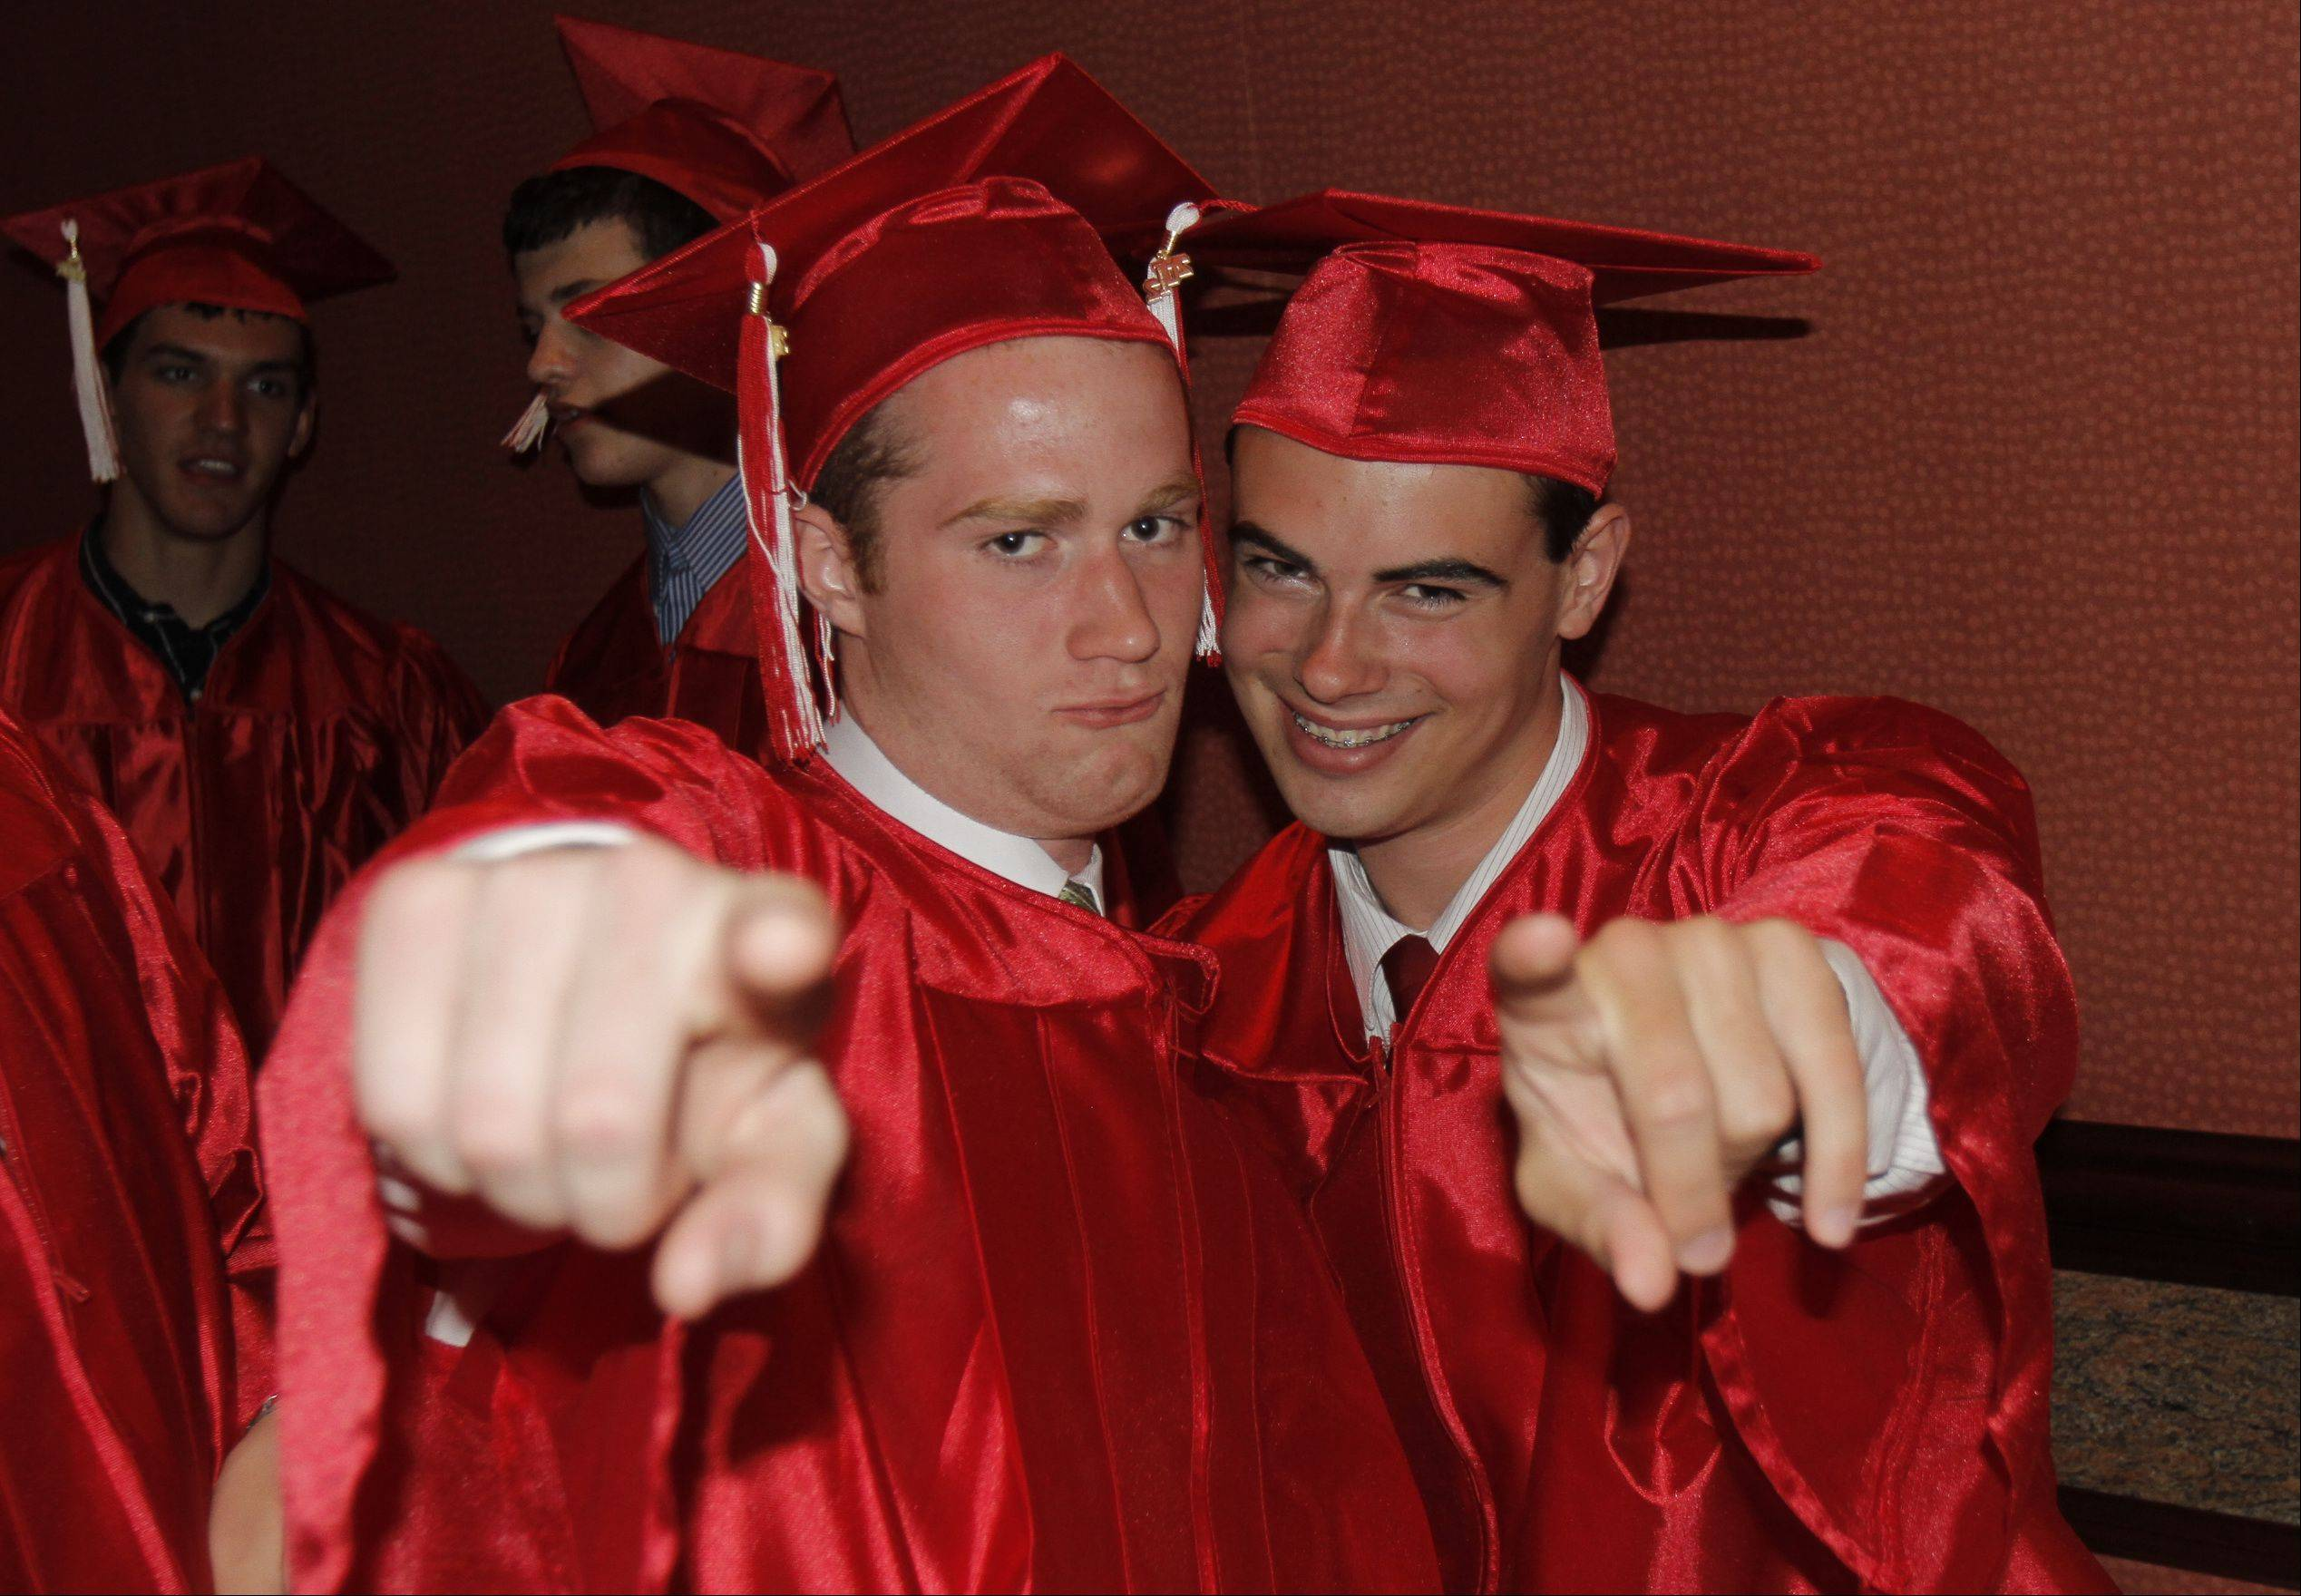 Images from the Maine South High School graduation on Sunday, June 3rd in Rosemont at the Rosemont Theatre.